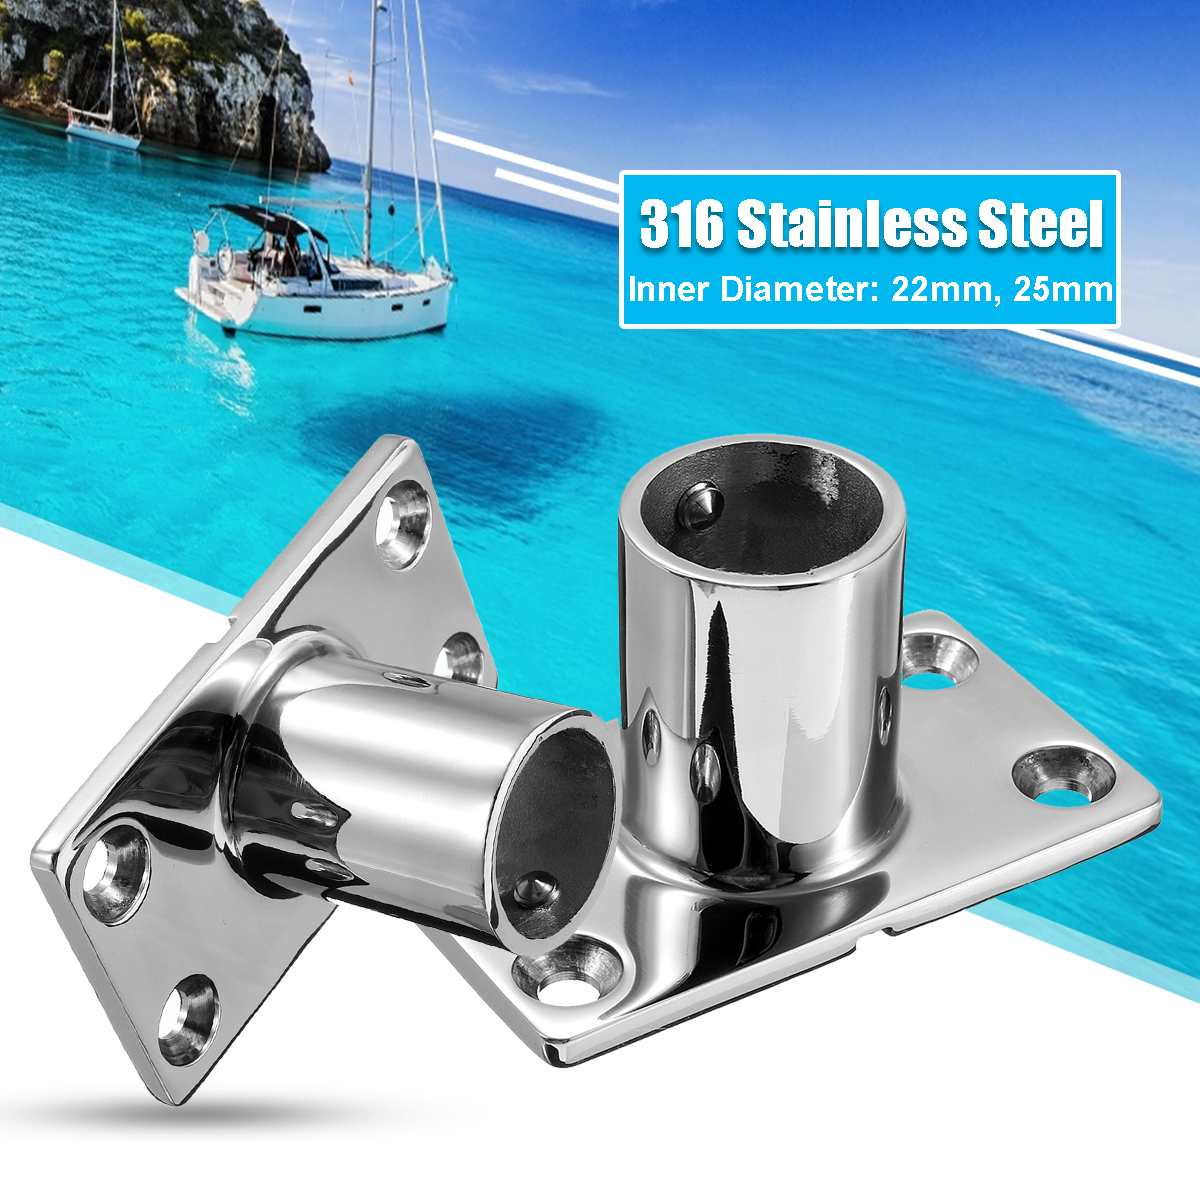 316 Stainless Steel Boat Tube Pipe Base Marine Boat 90° Railing Handrail Fitting Rails Pipe Base Reusable Marine Hardware